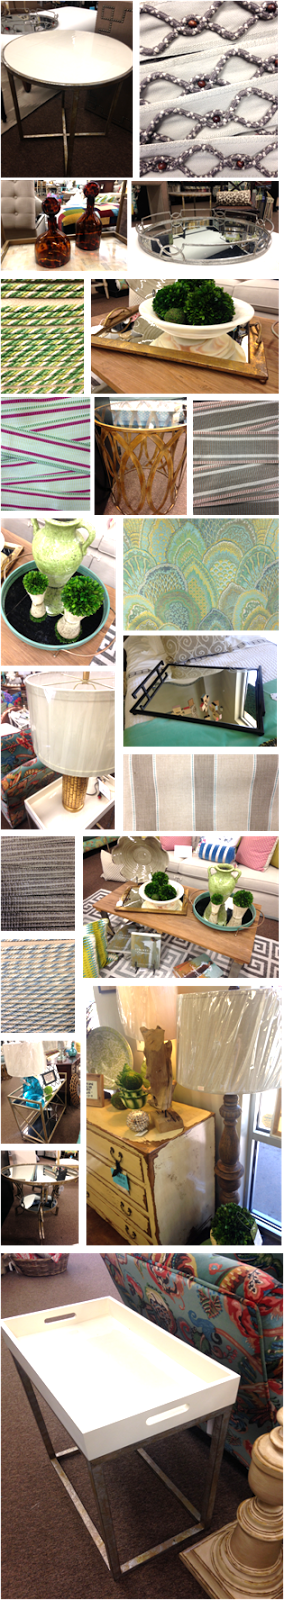 June 2015 Inventory: Accent Tables and Trays, Fabrics and Trims